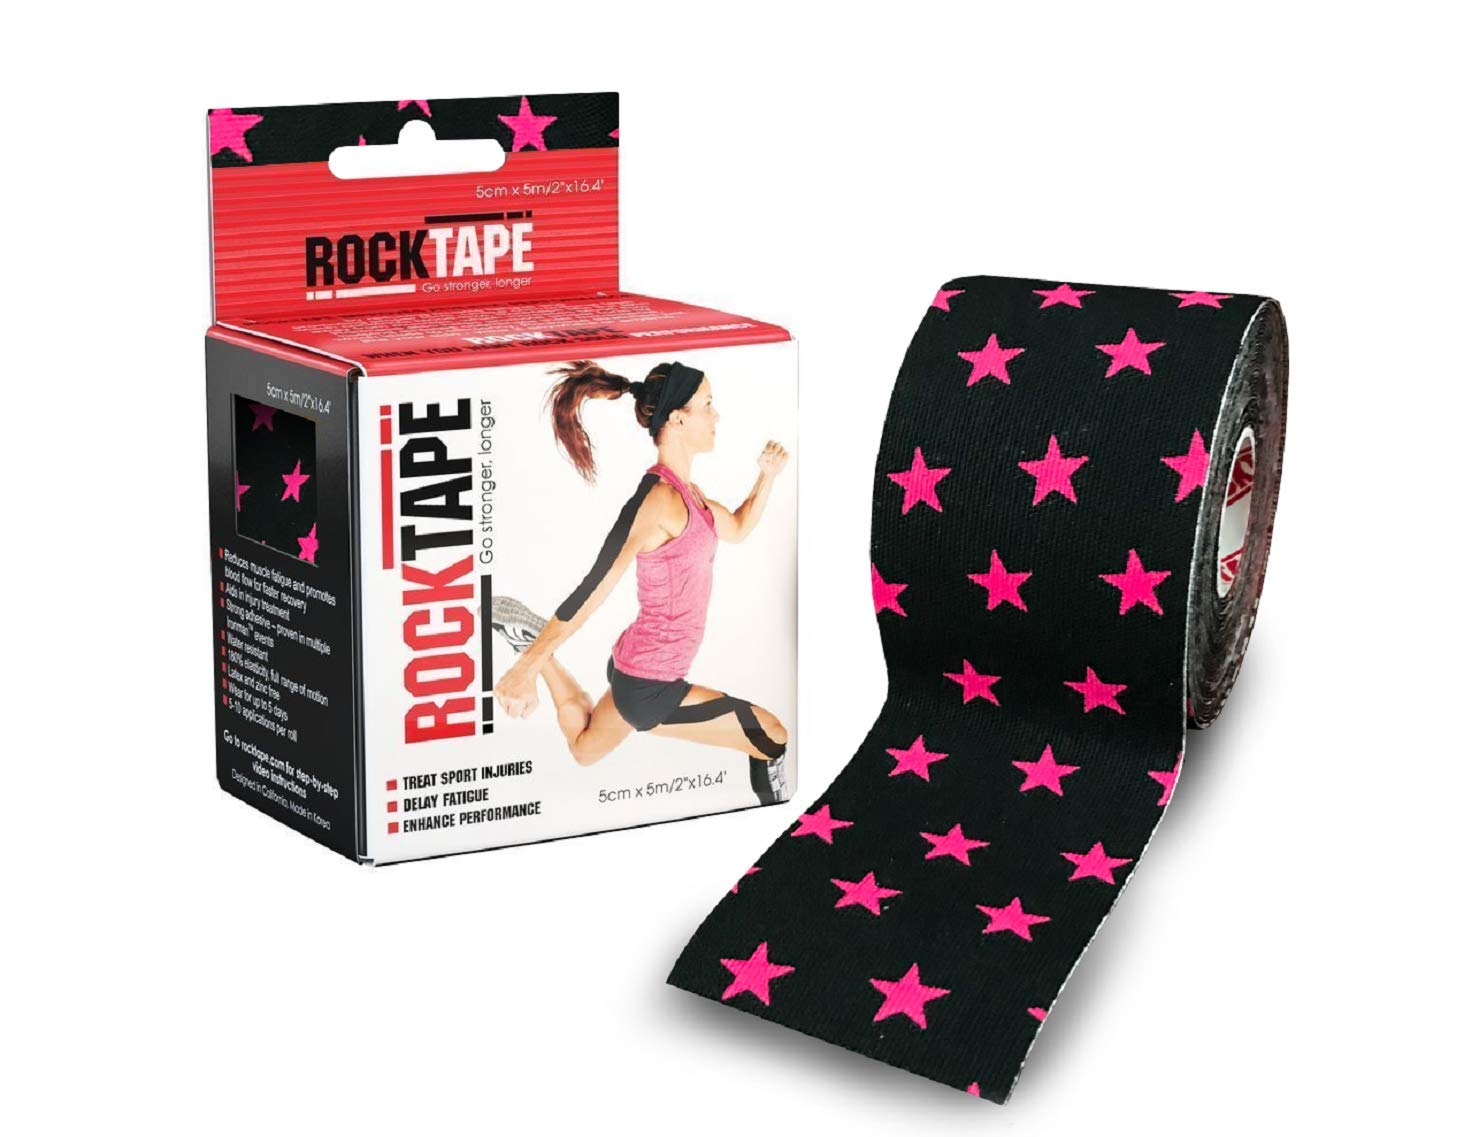 Rocktape Kinesiology Tape for Athletes, Water Resistant, Reduce Pain and Injury Recovery, 180% Elastic Stretch, 1 Roll, 16.4 Feet (Black and Pink Star)